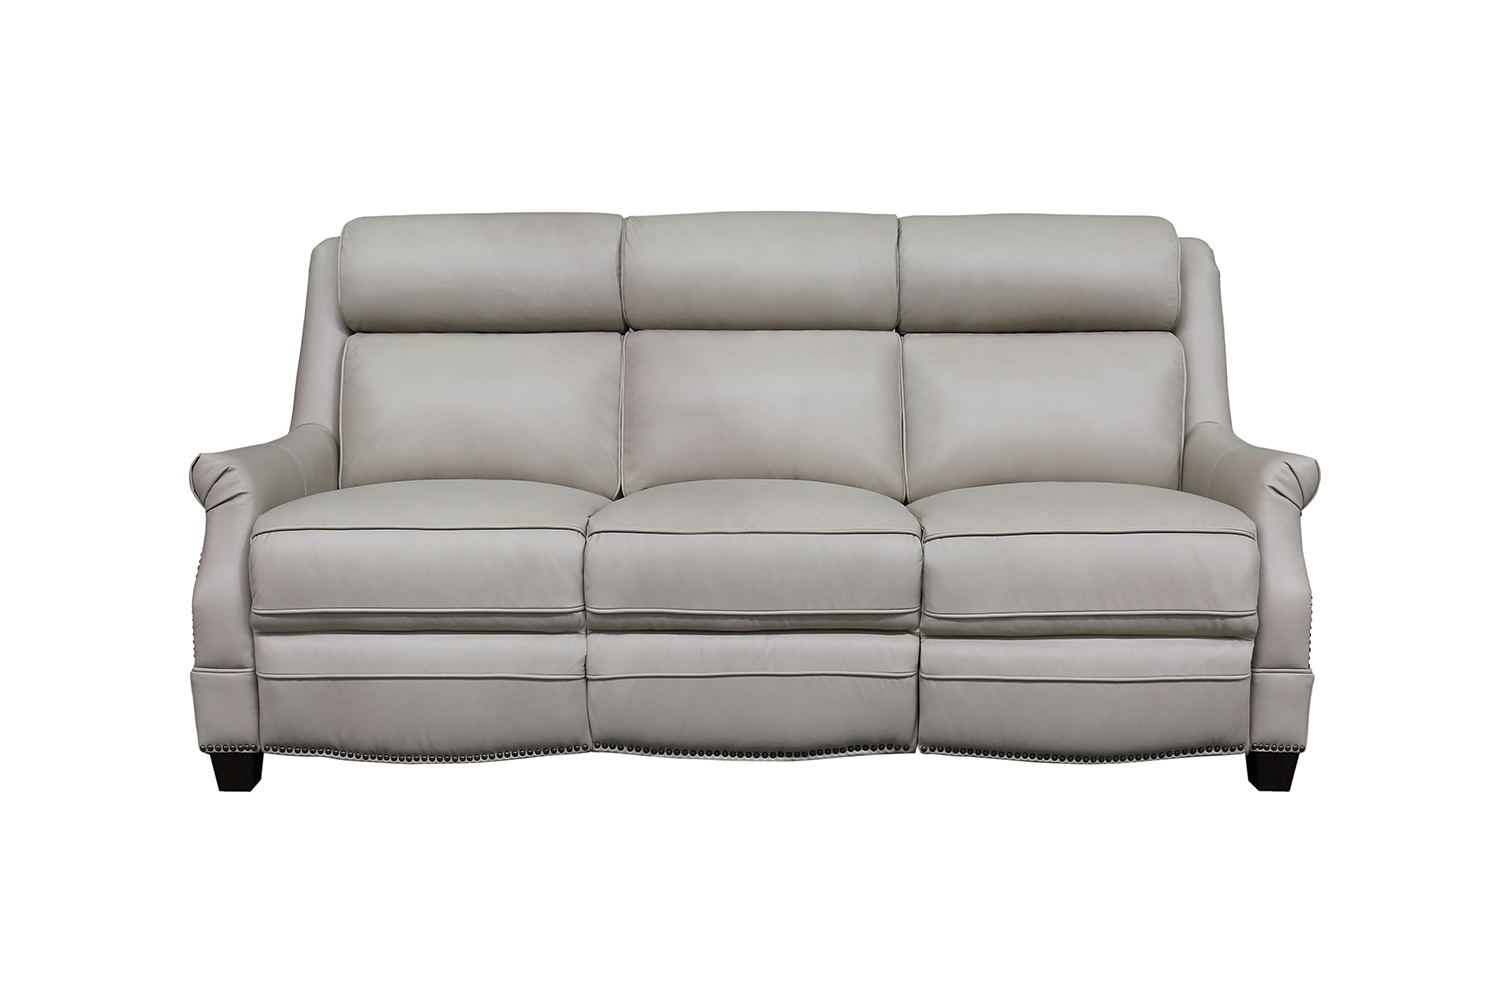 Barcalounger Warrendale Power Reclining Sofa with Power Head Rests - Shoreham Cream/All Leather